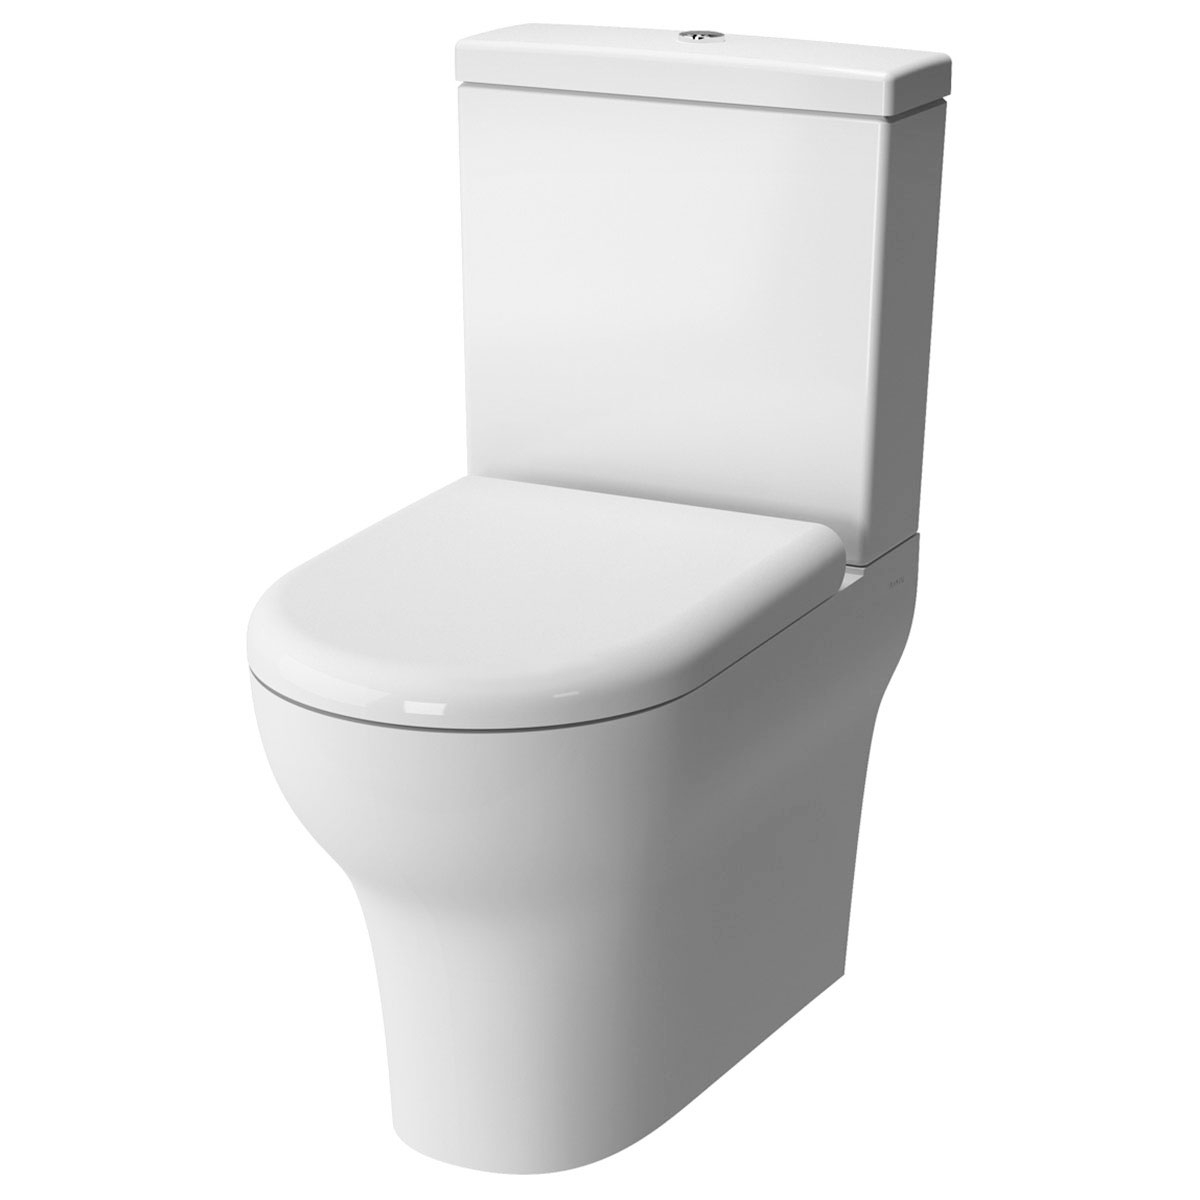 VitrA Zentrum Bathroom Cloakroom Suite Close Coupled Toilet 1 Tap Hole Basin - Soft Close Seat-1